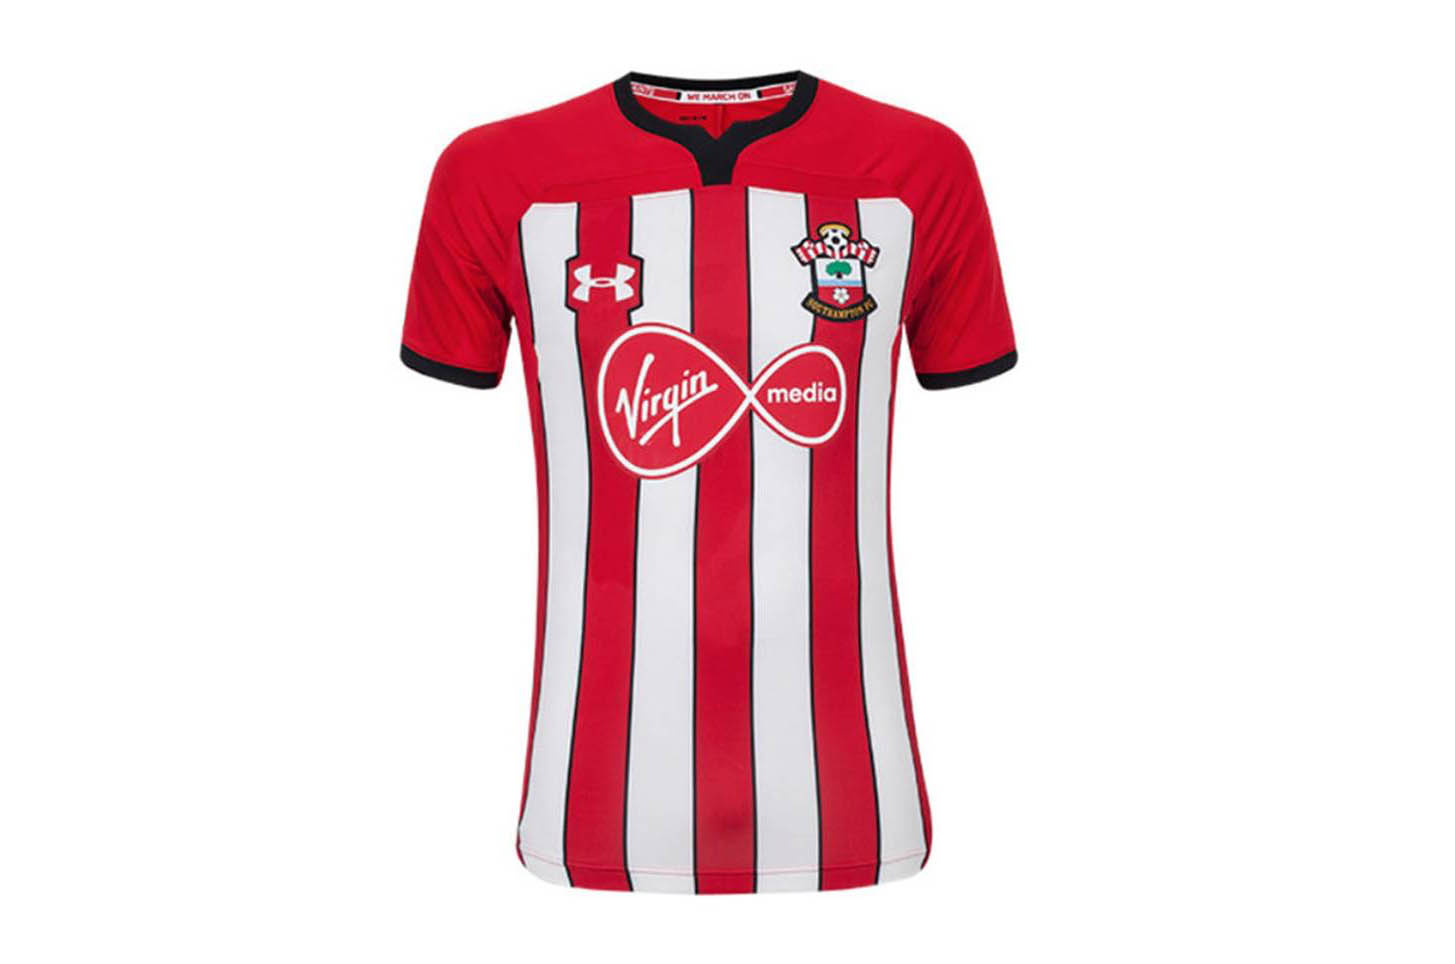 f9fdbaf40 Ranking Every 2018/19 Premier League Home Shirt - SoccerBible